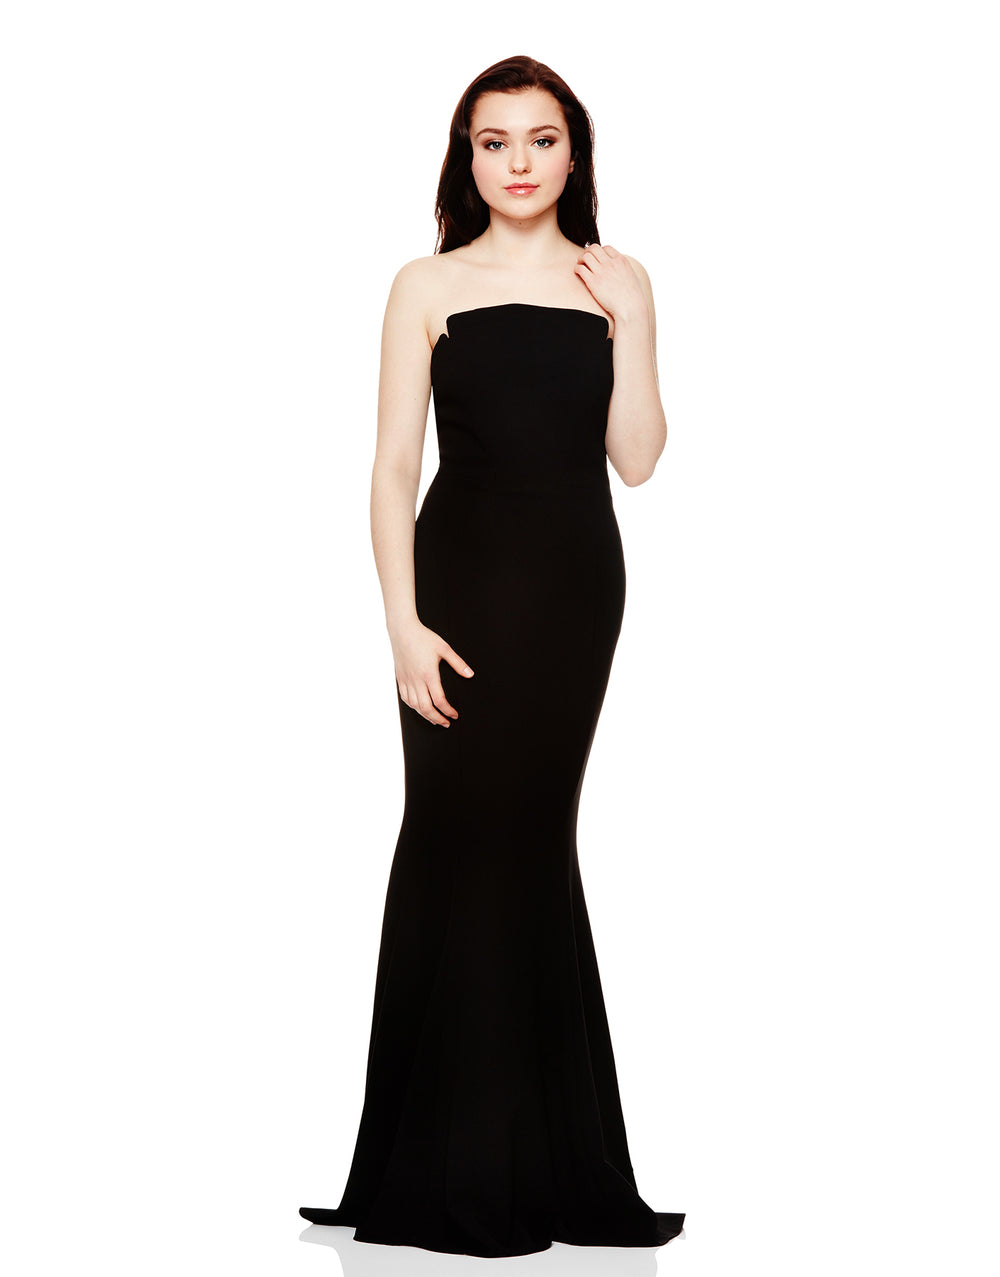 Notched Strapless Dress